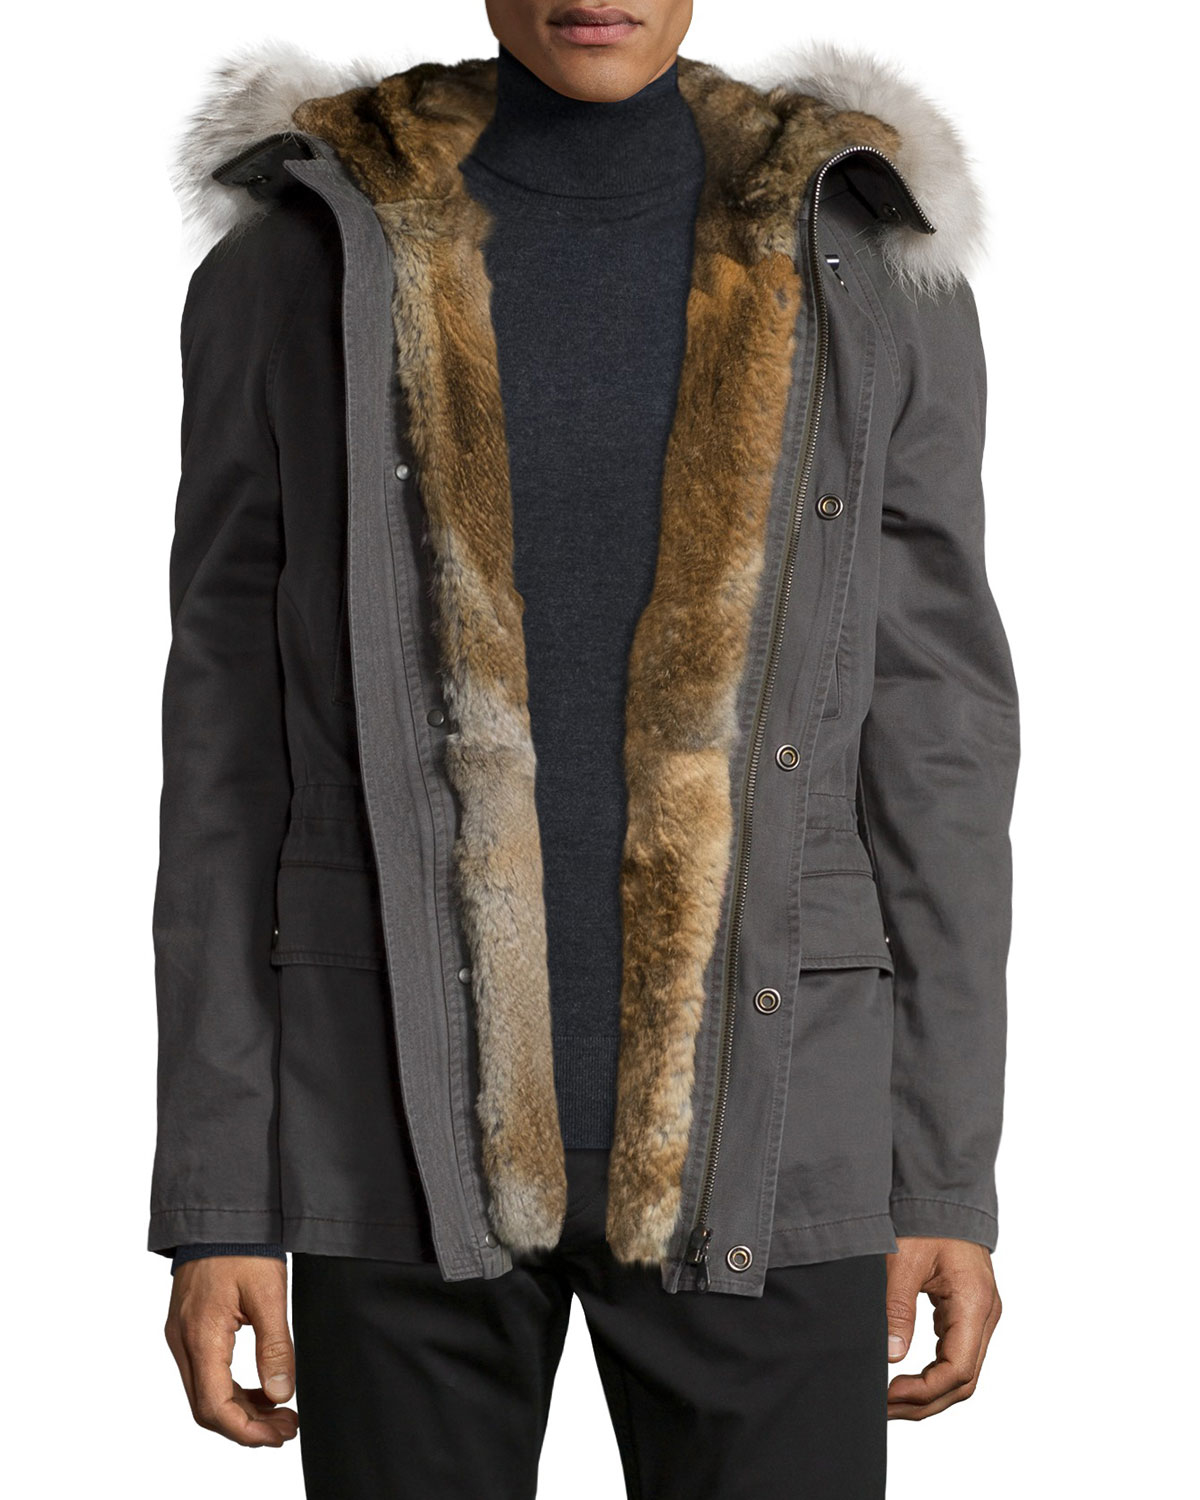 Mens Fur Lined Parka Coats Covu Clothing